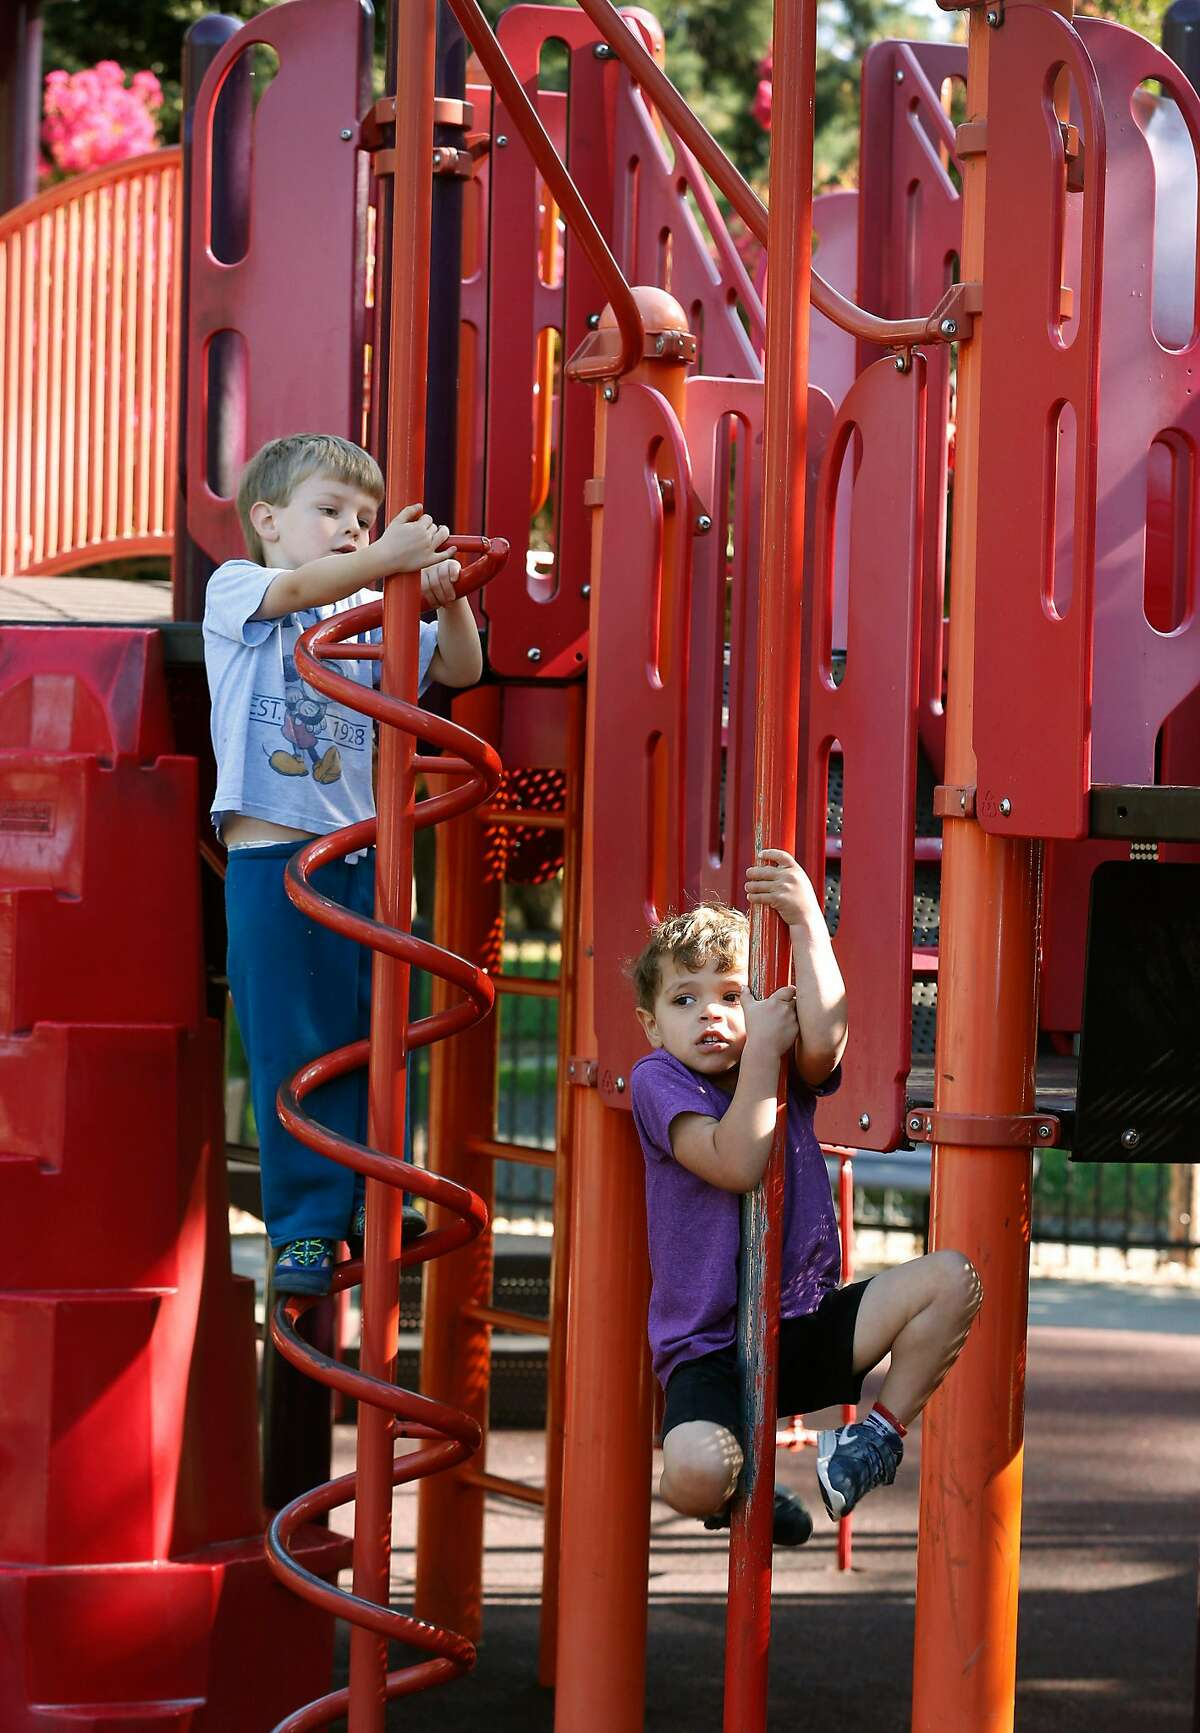 Finnegan Webster (left), 4, and Sebastian Kilgore, 3 1/2, climb on the play structure in the playground at Fuller Park in Napa, Calif. on Friday, Aug. 30, 2019. Jim Roberts and his team of volunteers from the local Kiwanis Club are constructing their 73rd playground on Sept. 7 at Playground Fantastico park.